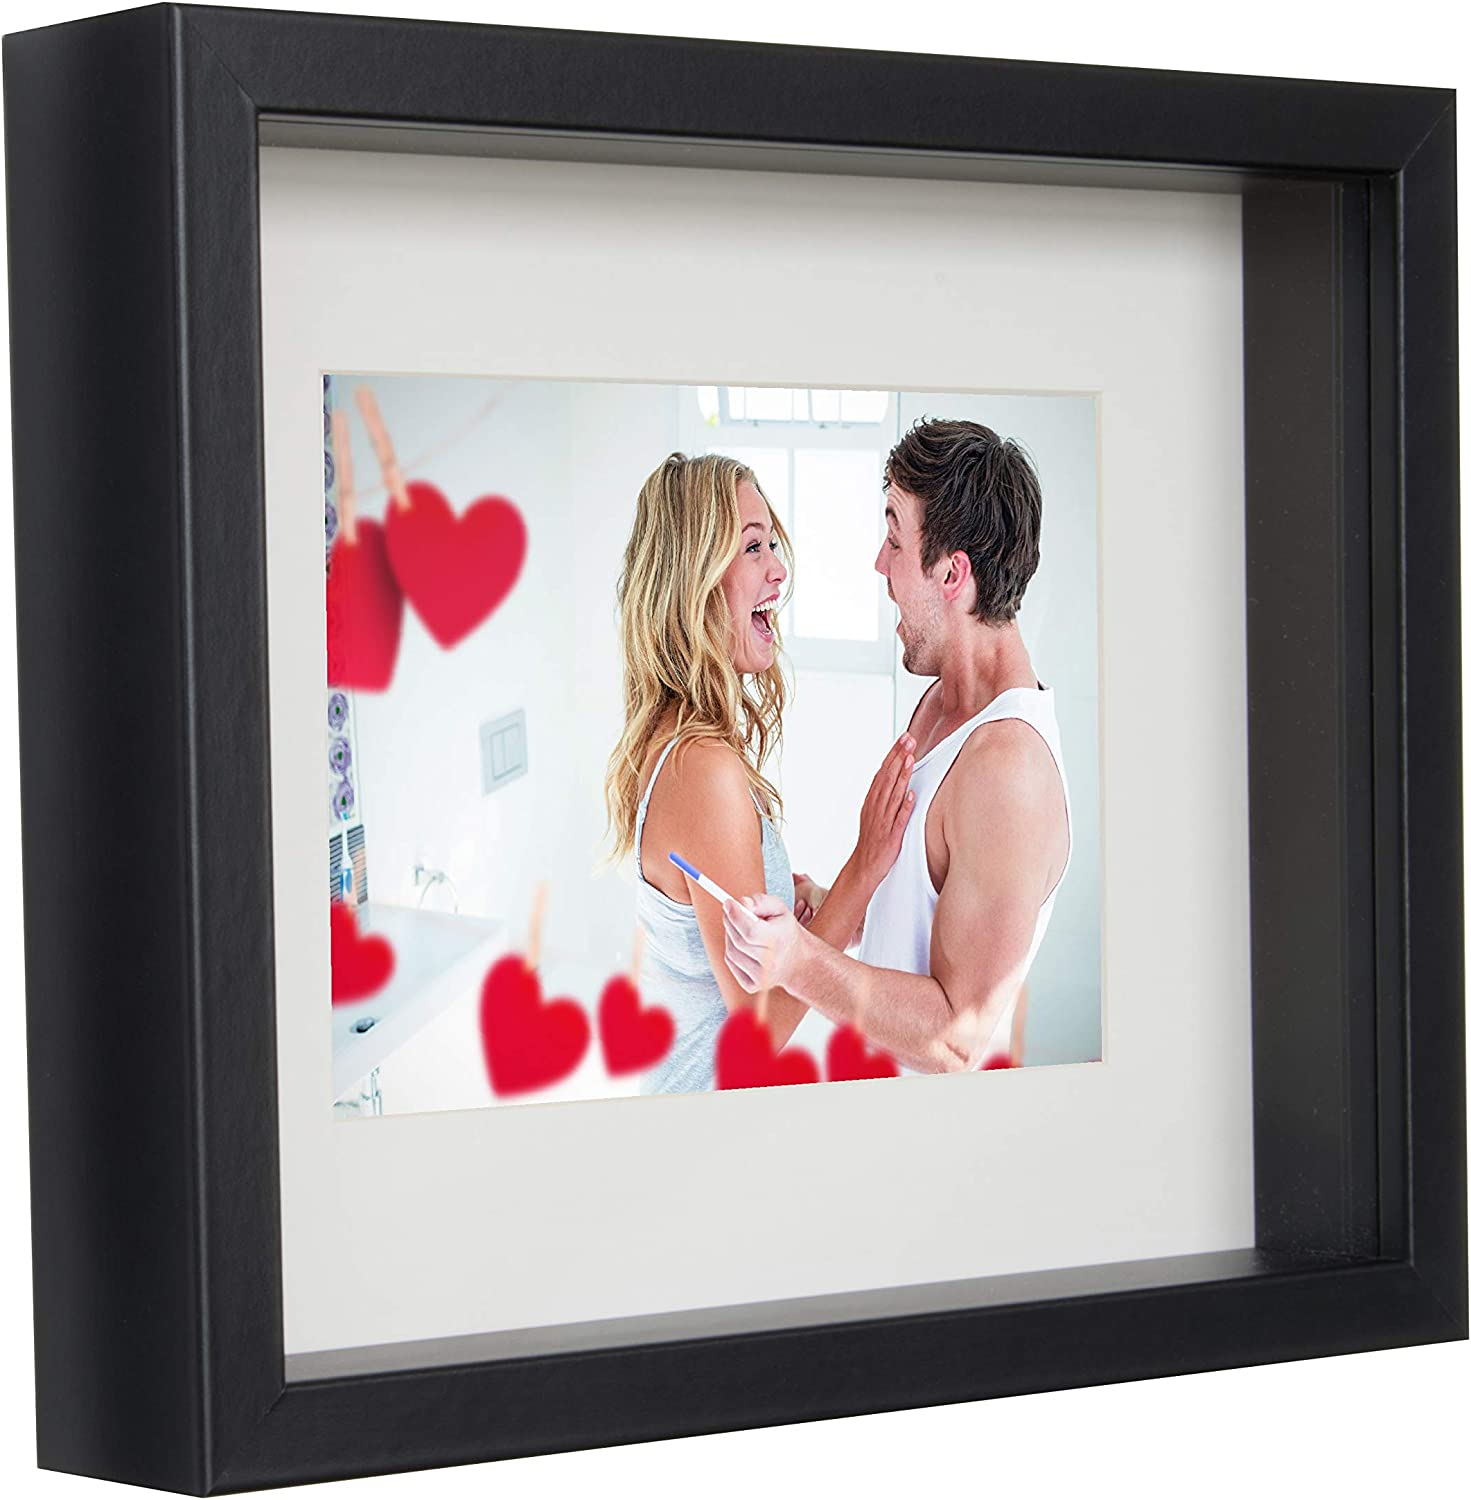 Amazon Com Bd Art 8x10 20 X 25 X 4 7 Cm Black Shadow Box 3d